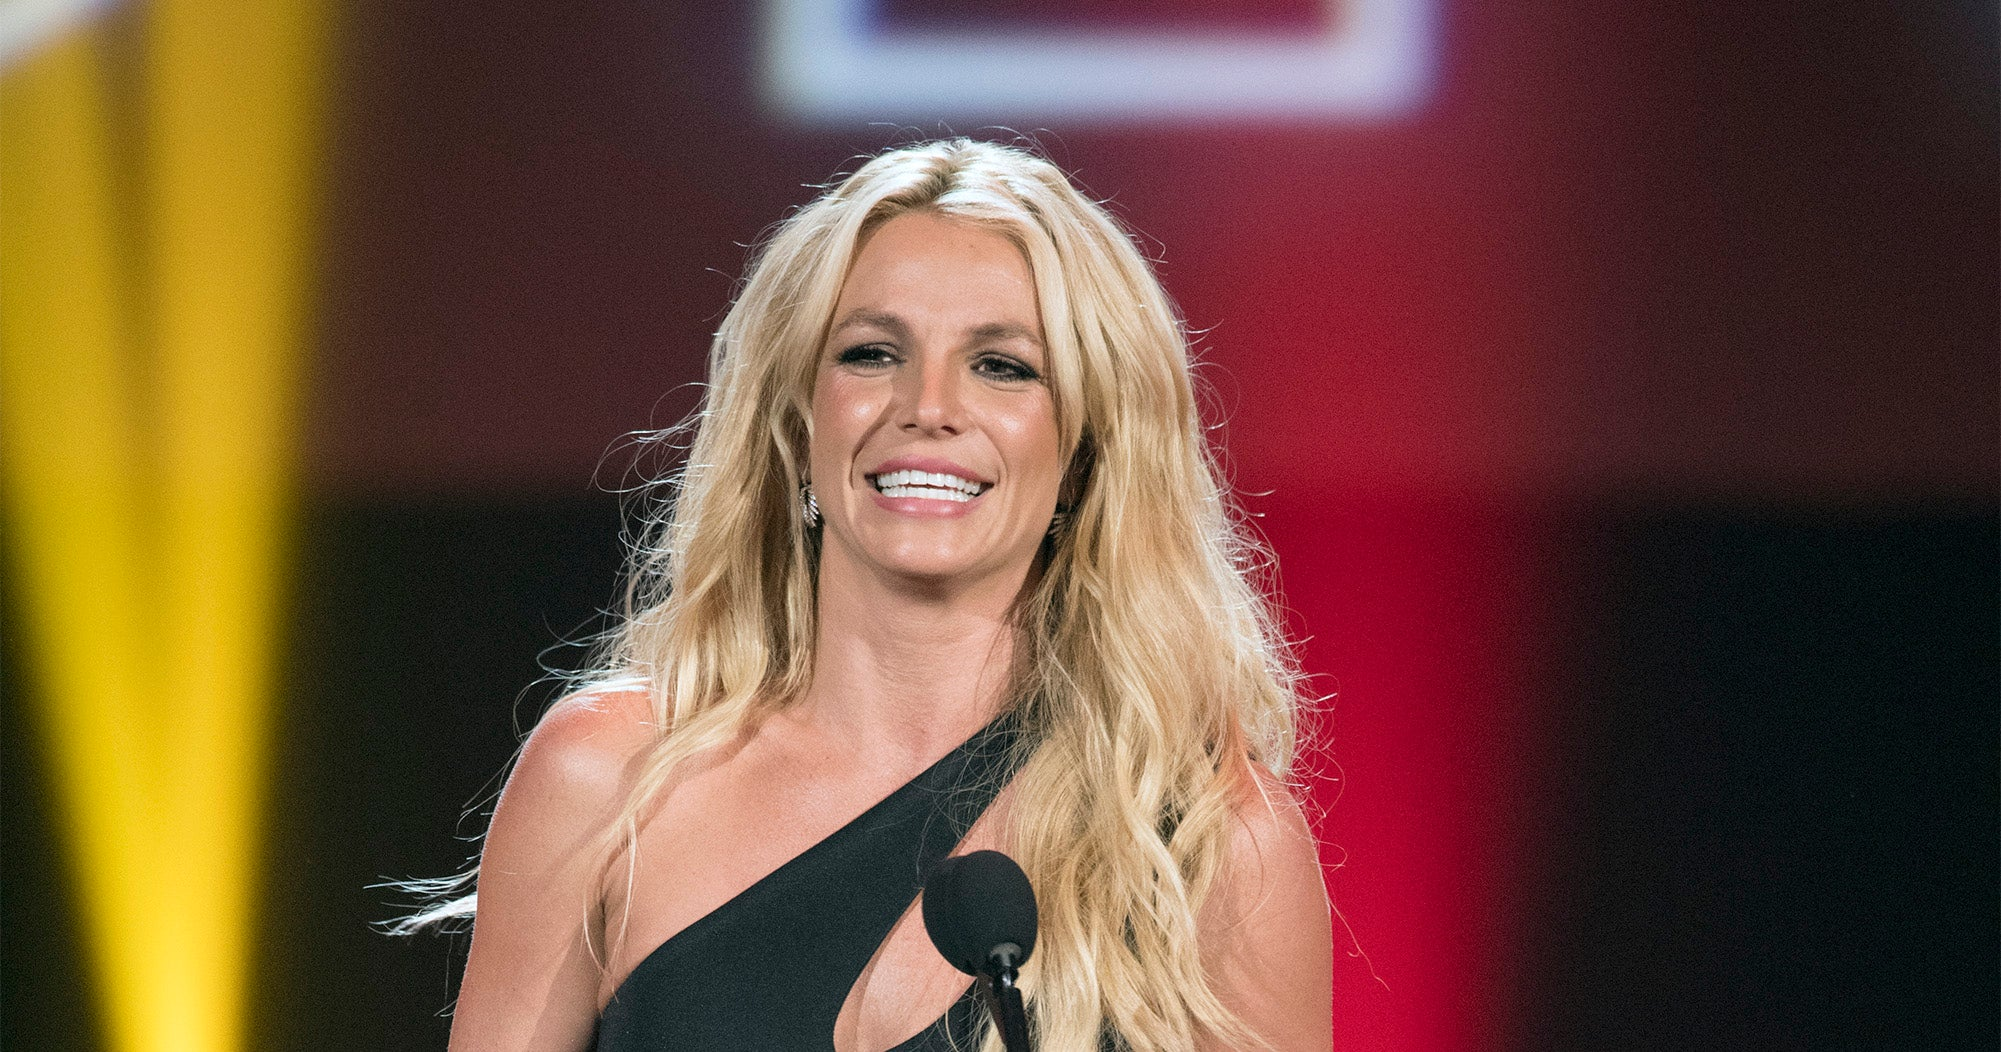 Britney Spears Just Gave Herself A Fall Hair Makeover — & It Looks Great